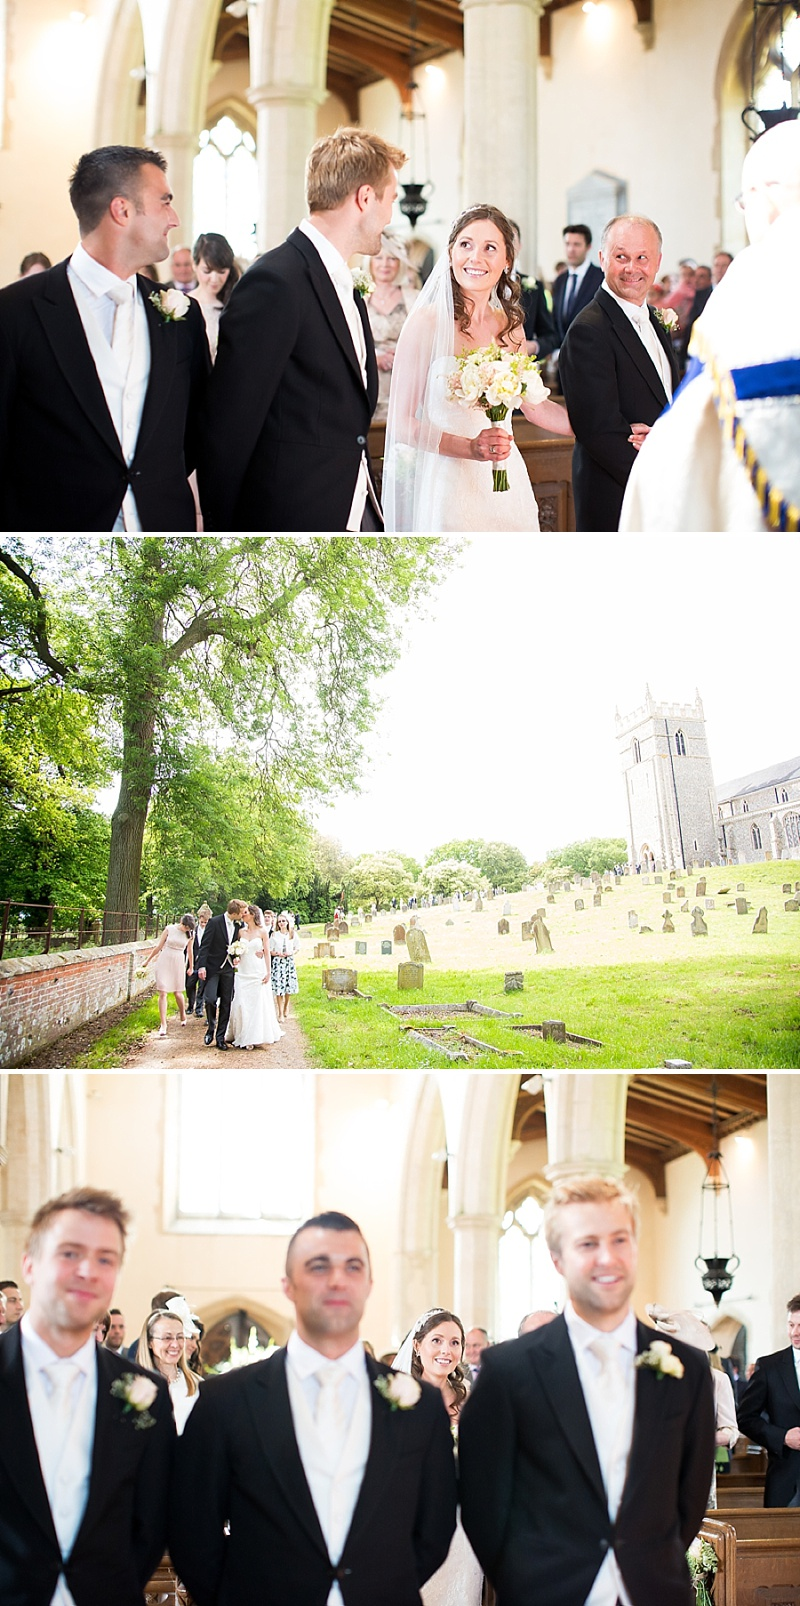 Elegant Wedding At Holkham Hall Norfolk With Bride In Hepburn By Suzanne Neville With Rachel Simpson Bridal Shoes And Nude Bridemaids Dresses From Ted Baker Images From Katherine Ashdown_0010